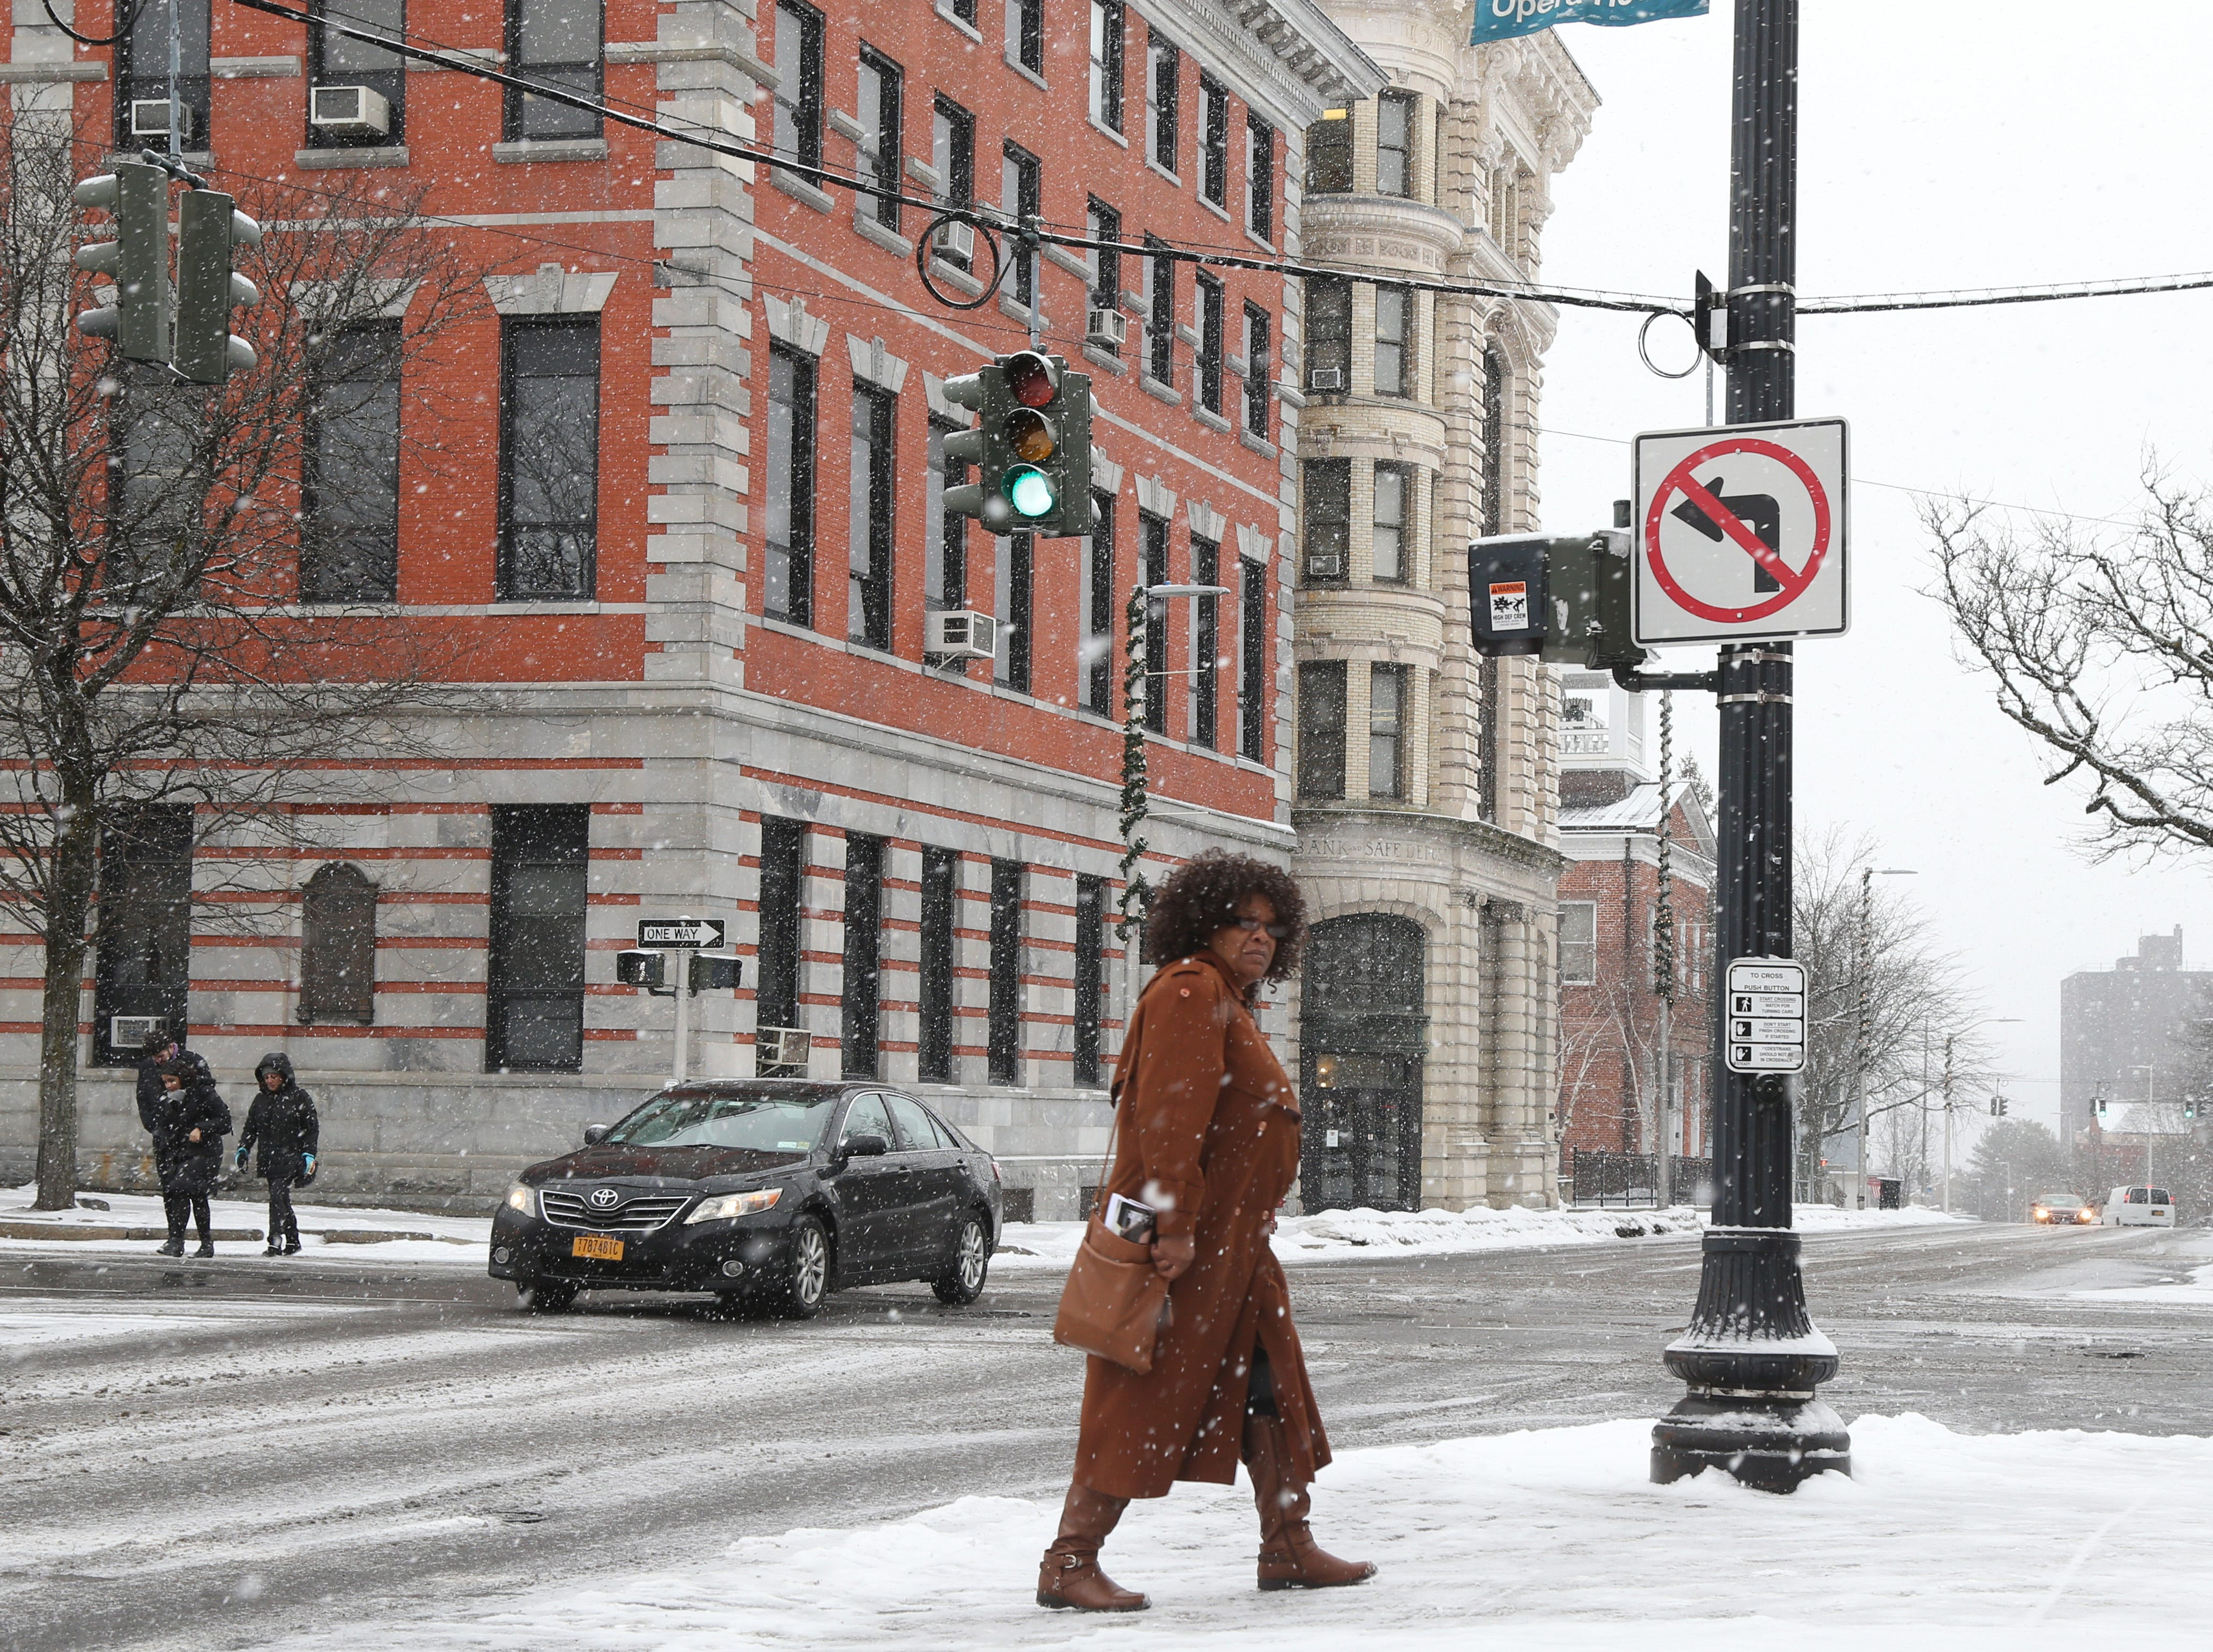 Lynn Holder of Wappingers Falls makes her way back to her car on Market Street in the City of Poughkeepsie on January 29, 2019.